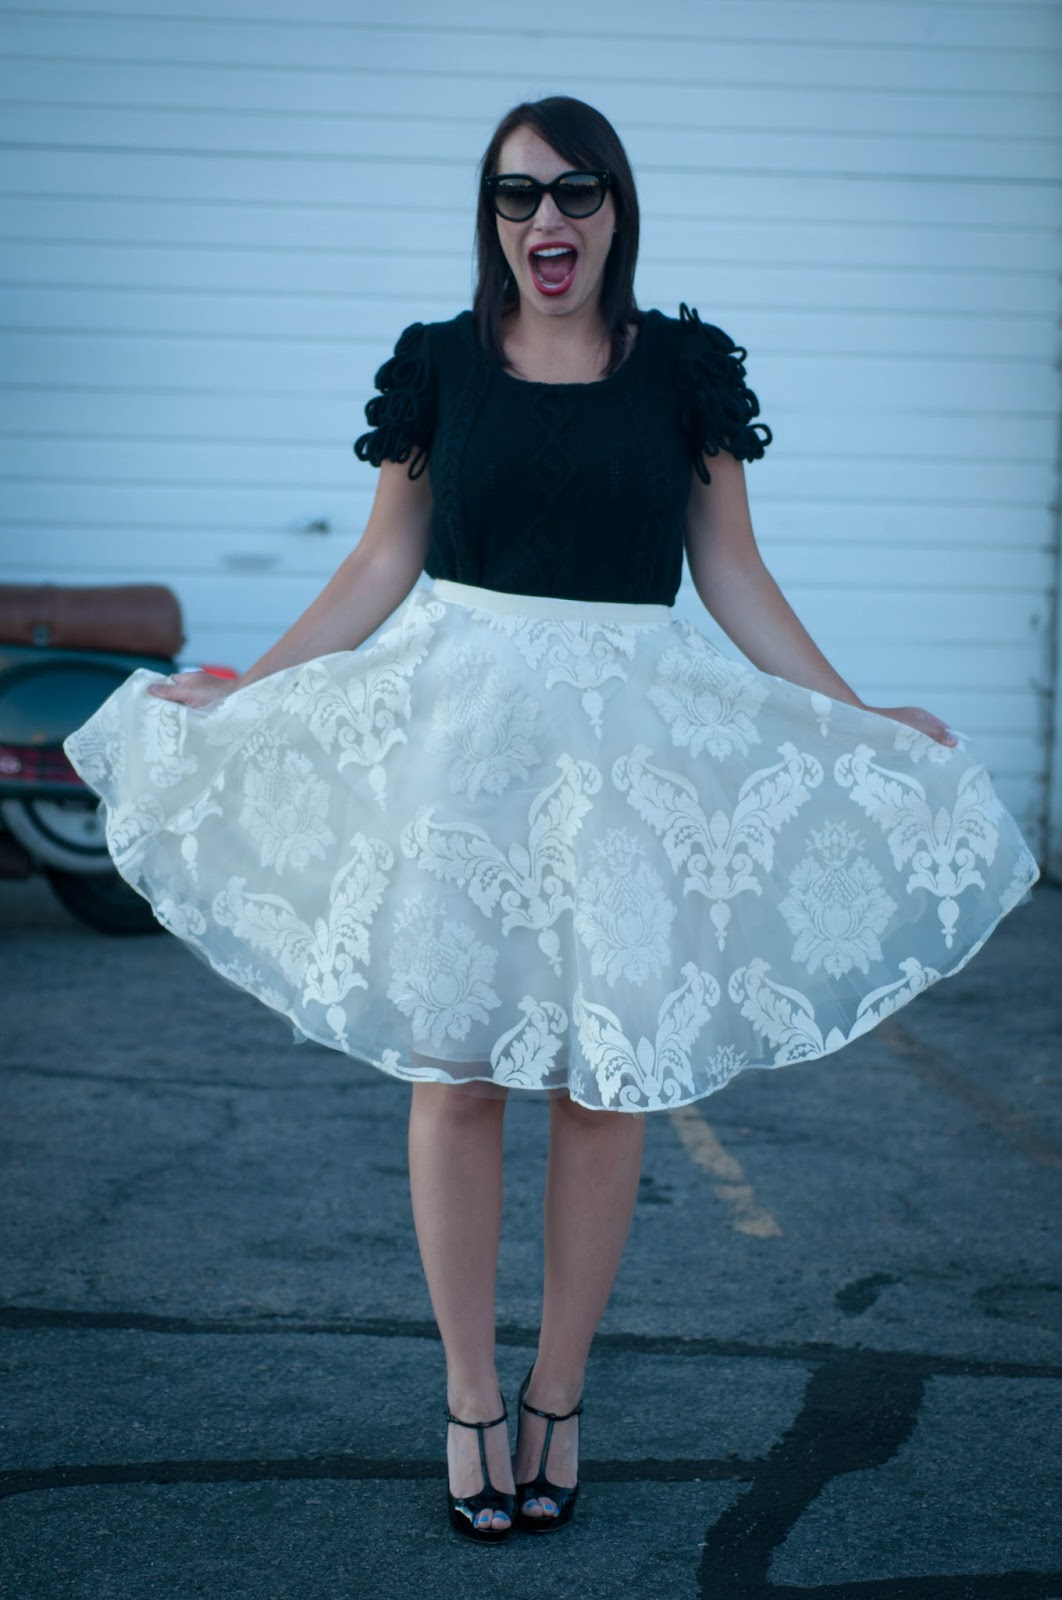 tulle skirt, tutu skirt, christian louboutin t strap pumps, red soles, anthropologie ootd, ootd